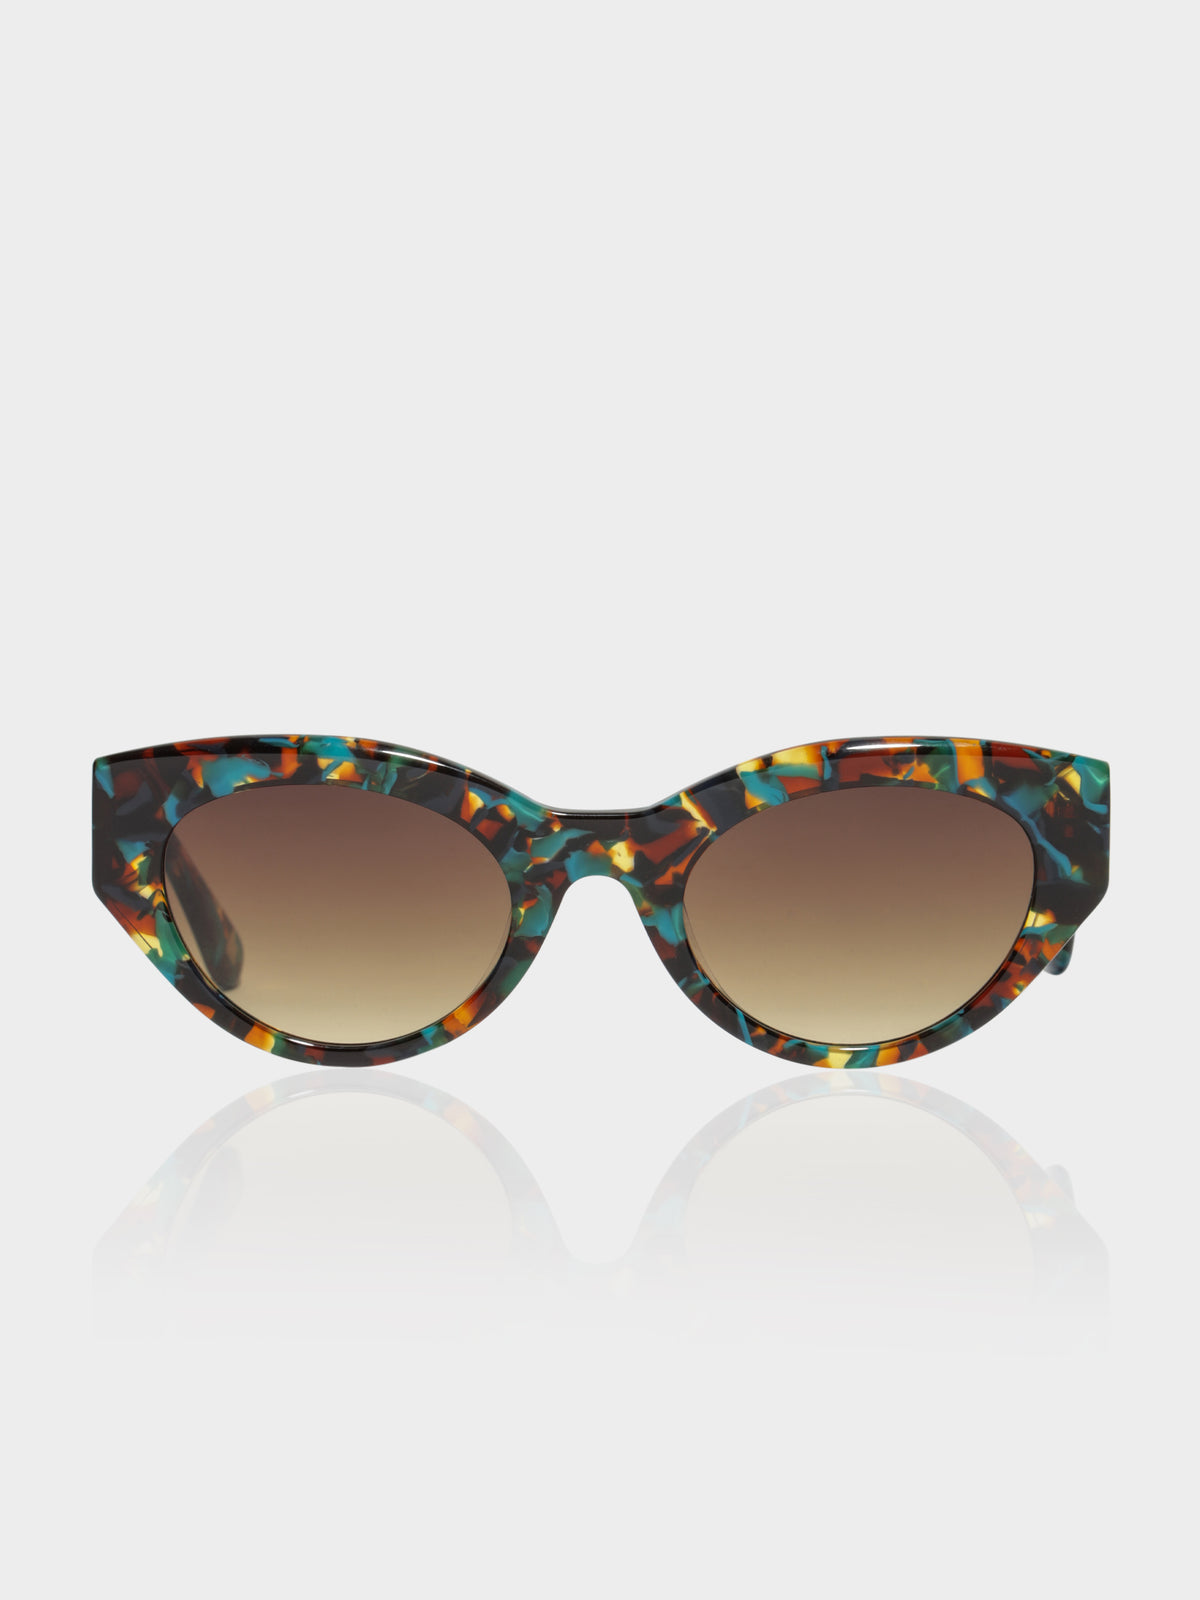 CL771003 Magnific Sunglasses in Brown Green Tortoiseshell